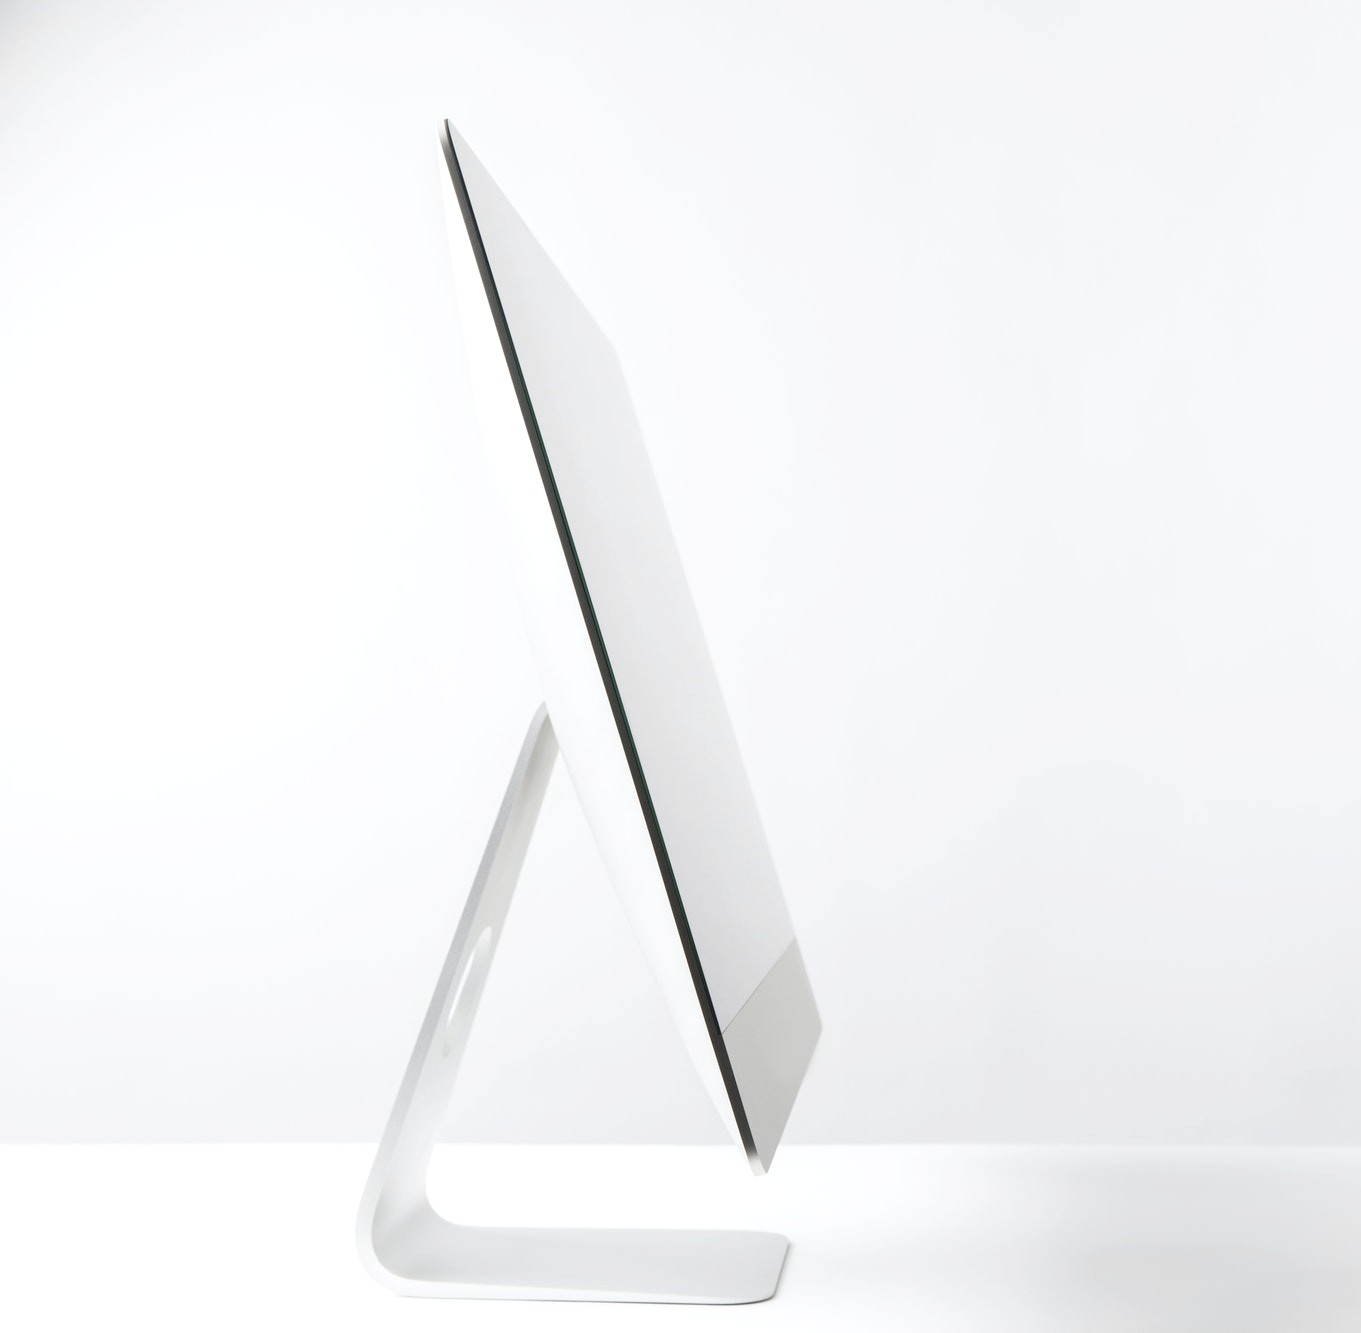 side-view-of-desktop-computer-monitor-on-white (2)